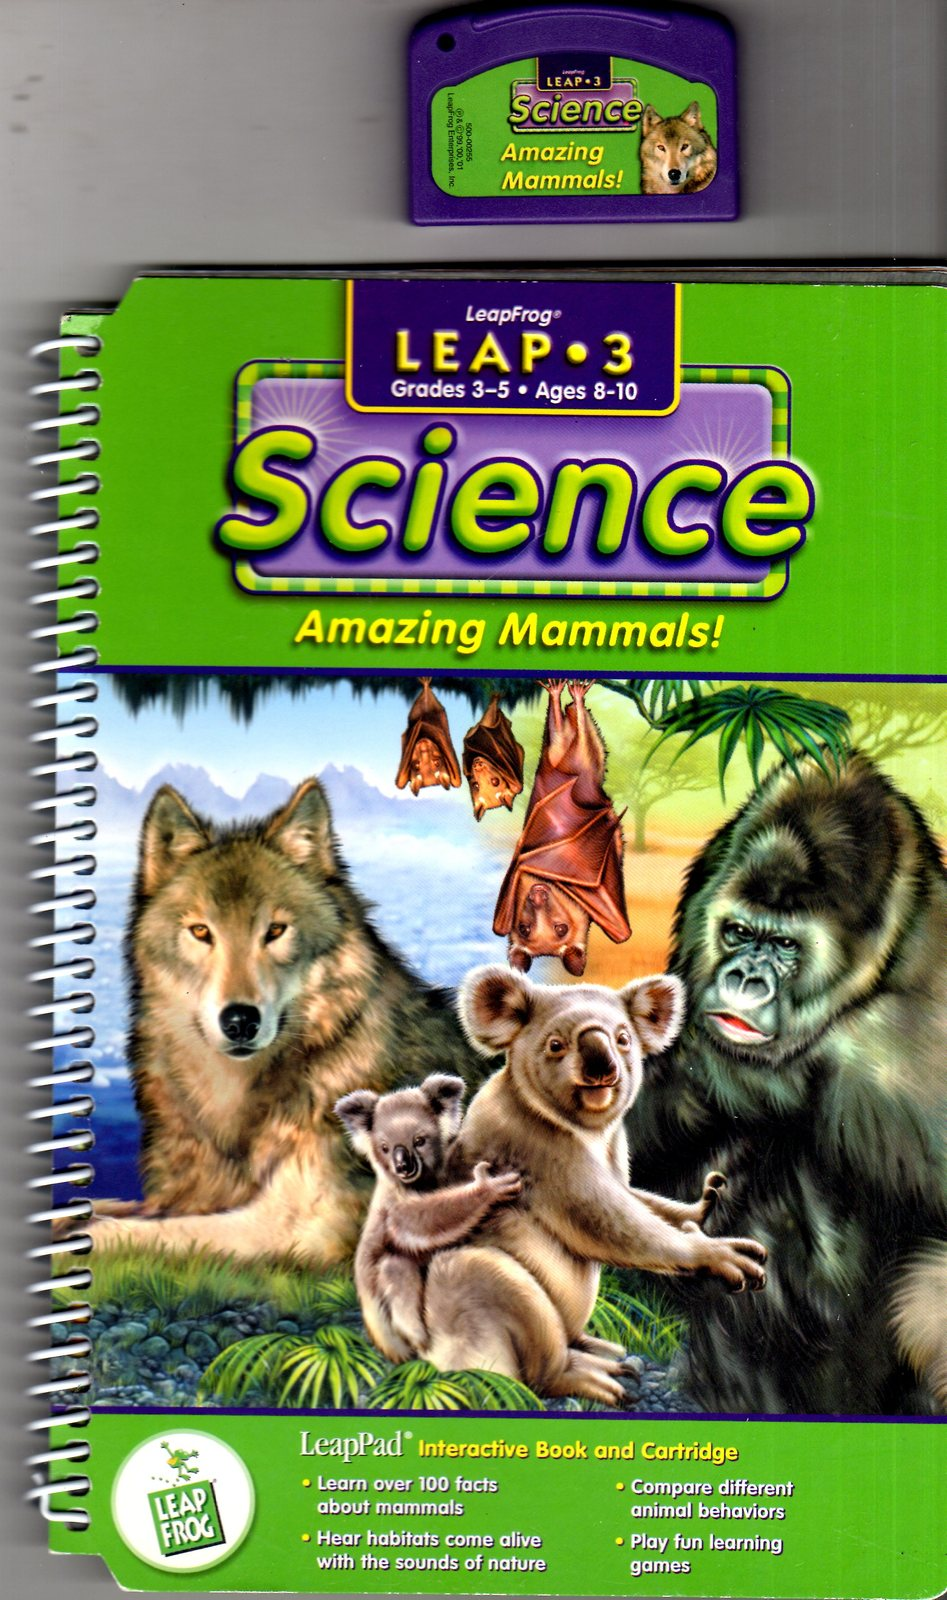 "LeapFrog -Science ""Amazing Mammals!"" - Leap 3"